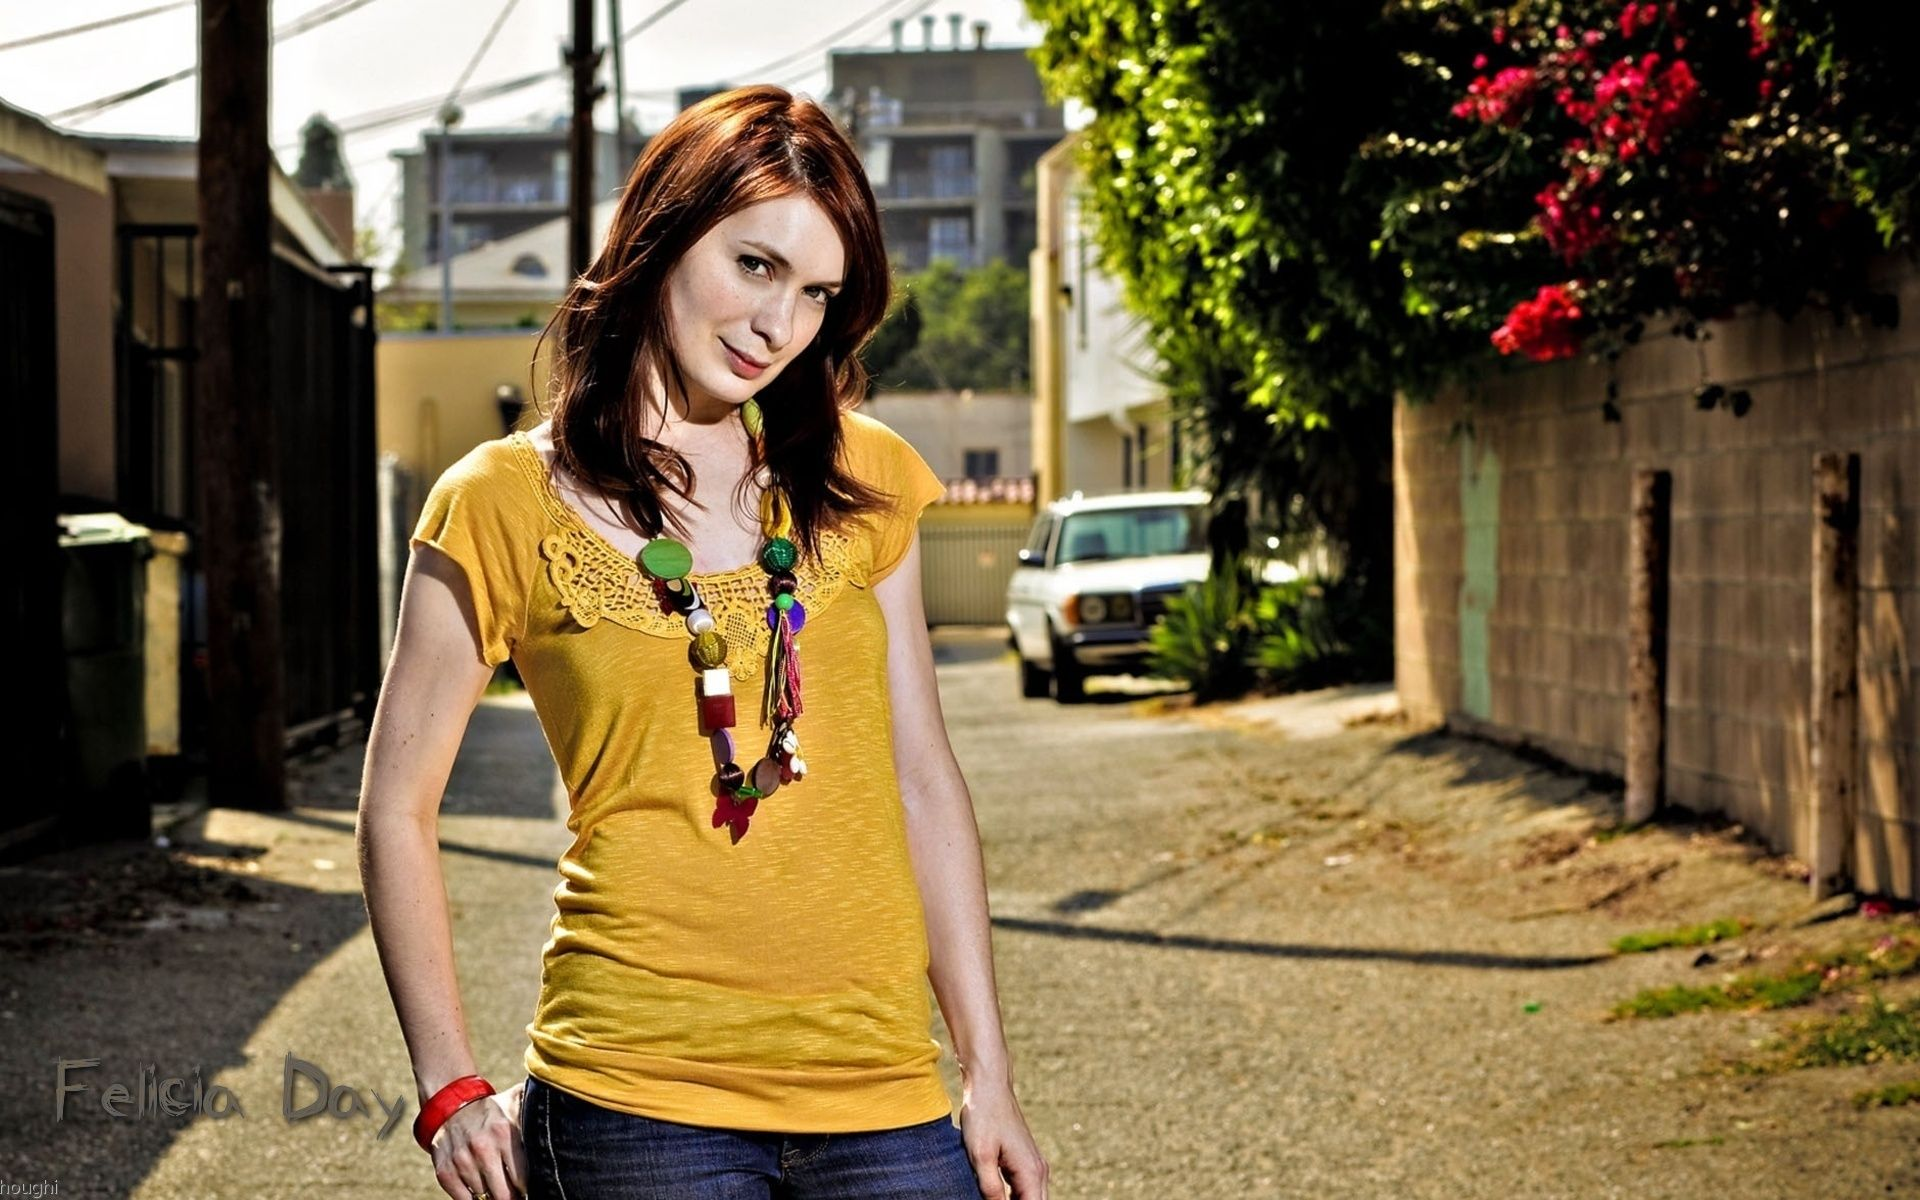 1920x1200 - Felicia Day Wallpapers 14